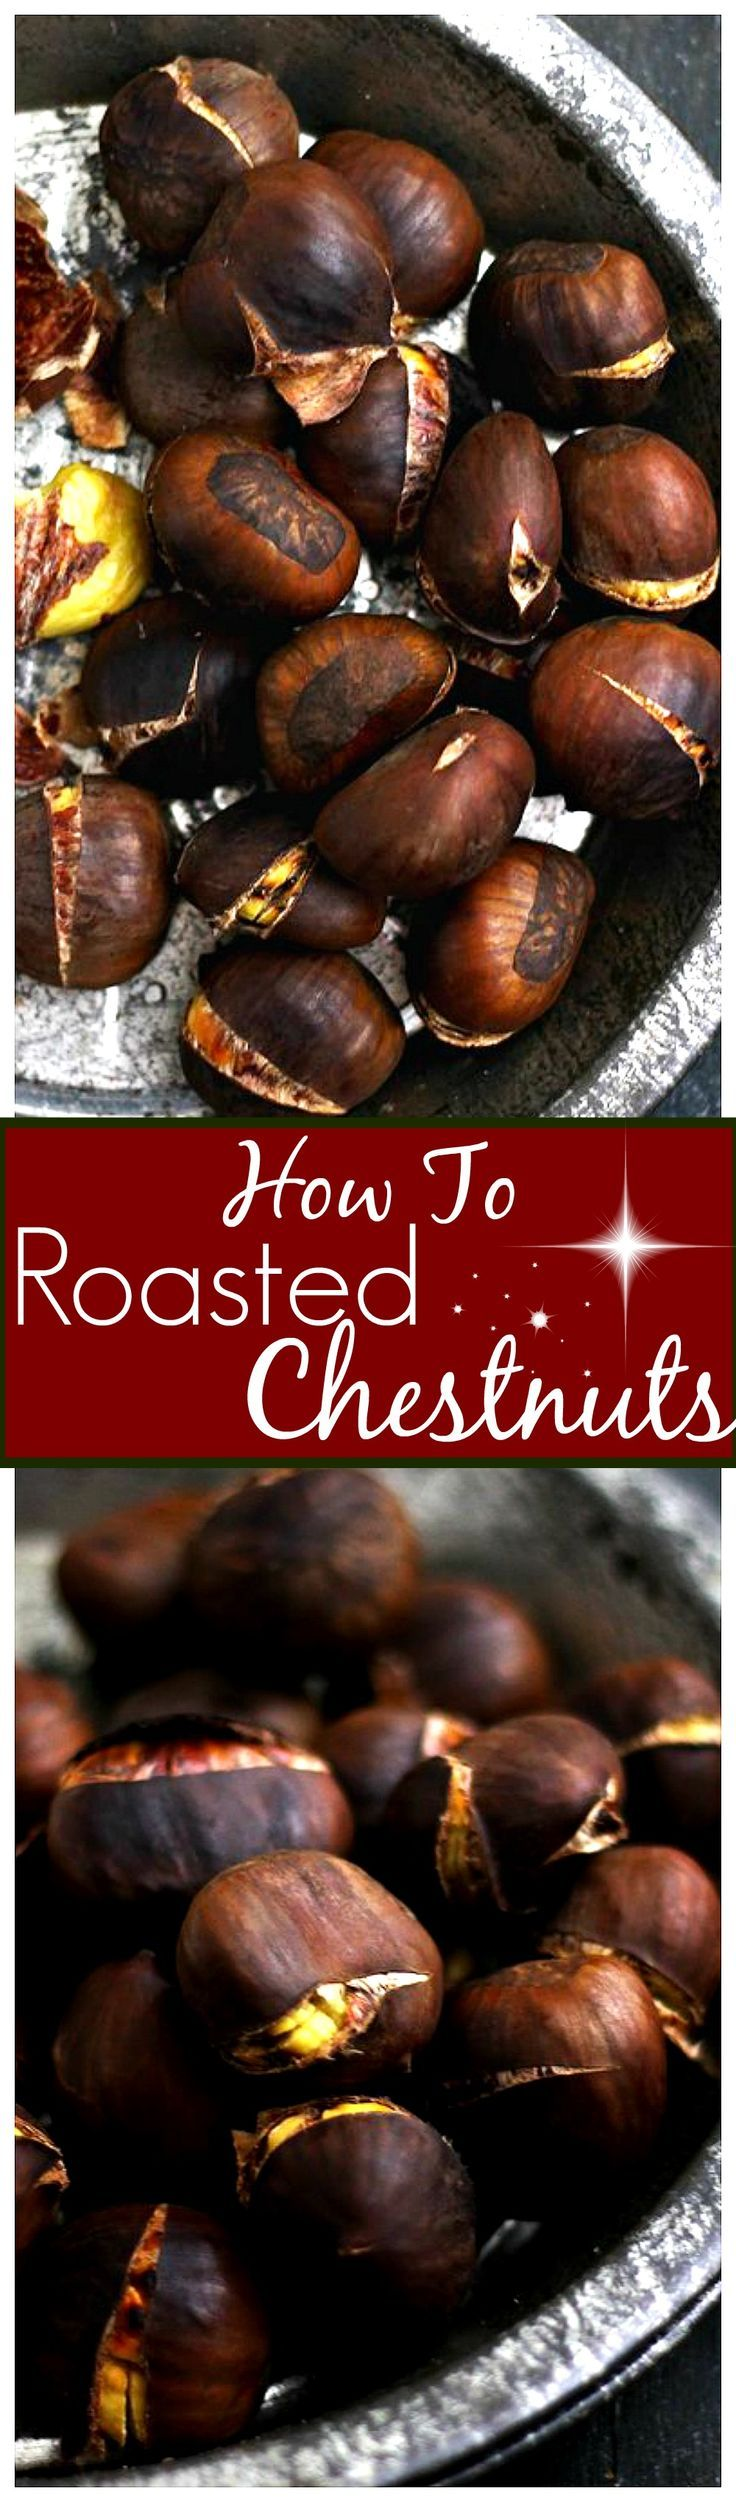 Roasted Chestnuts | www.diethood.com | How to roast this traditional and delicious holiday snack!